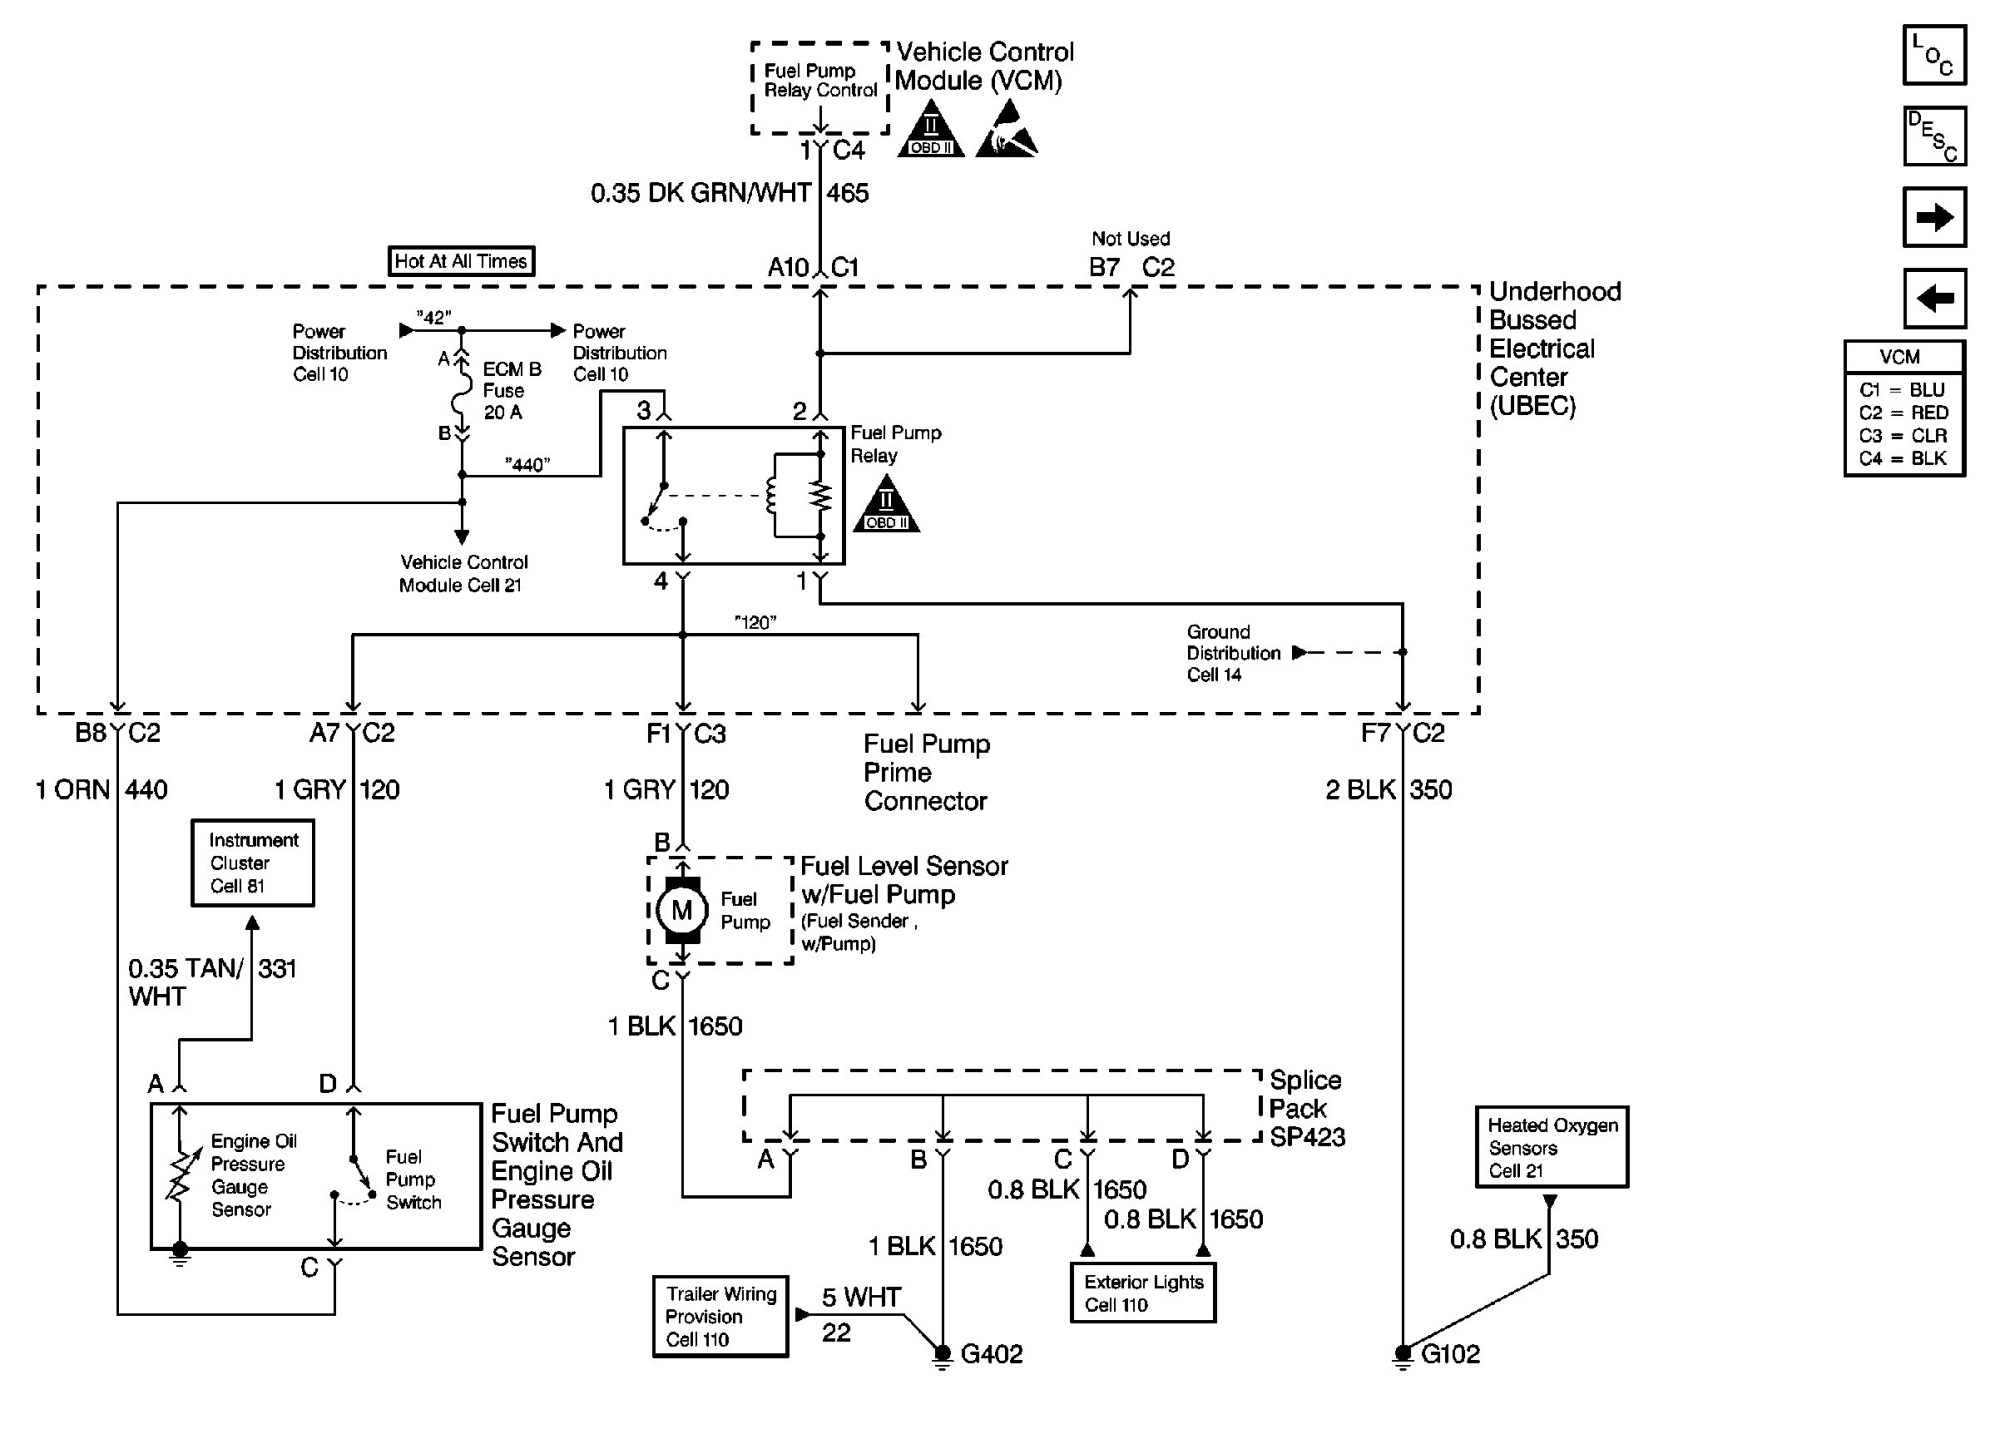 hight resolution of 1989 chevy blazer wiring diagram also 2000 chevy blazer wiring rh abetter pw